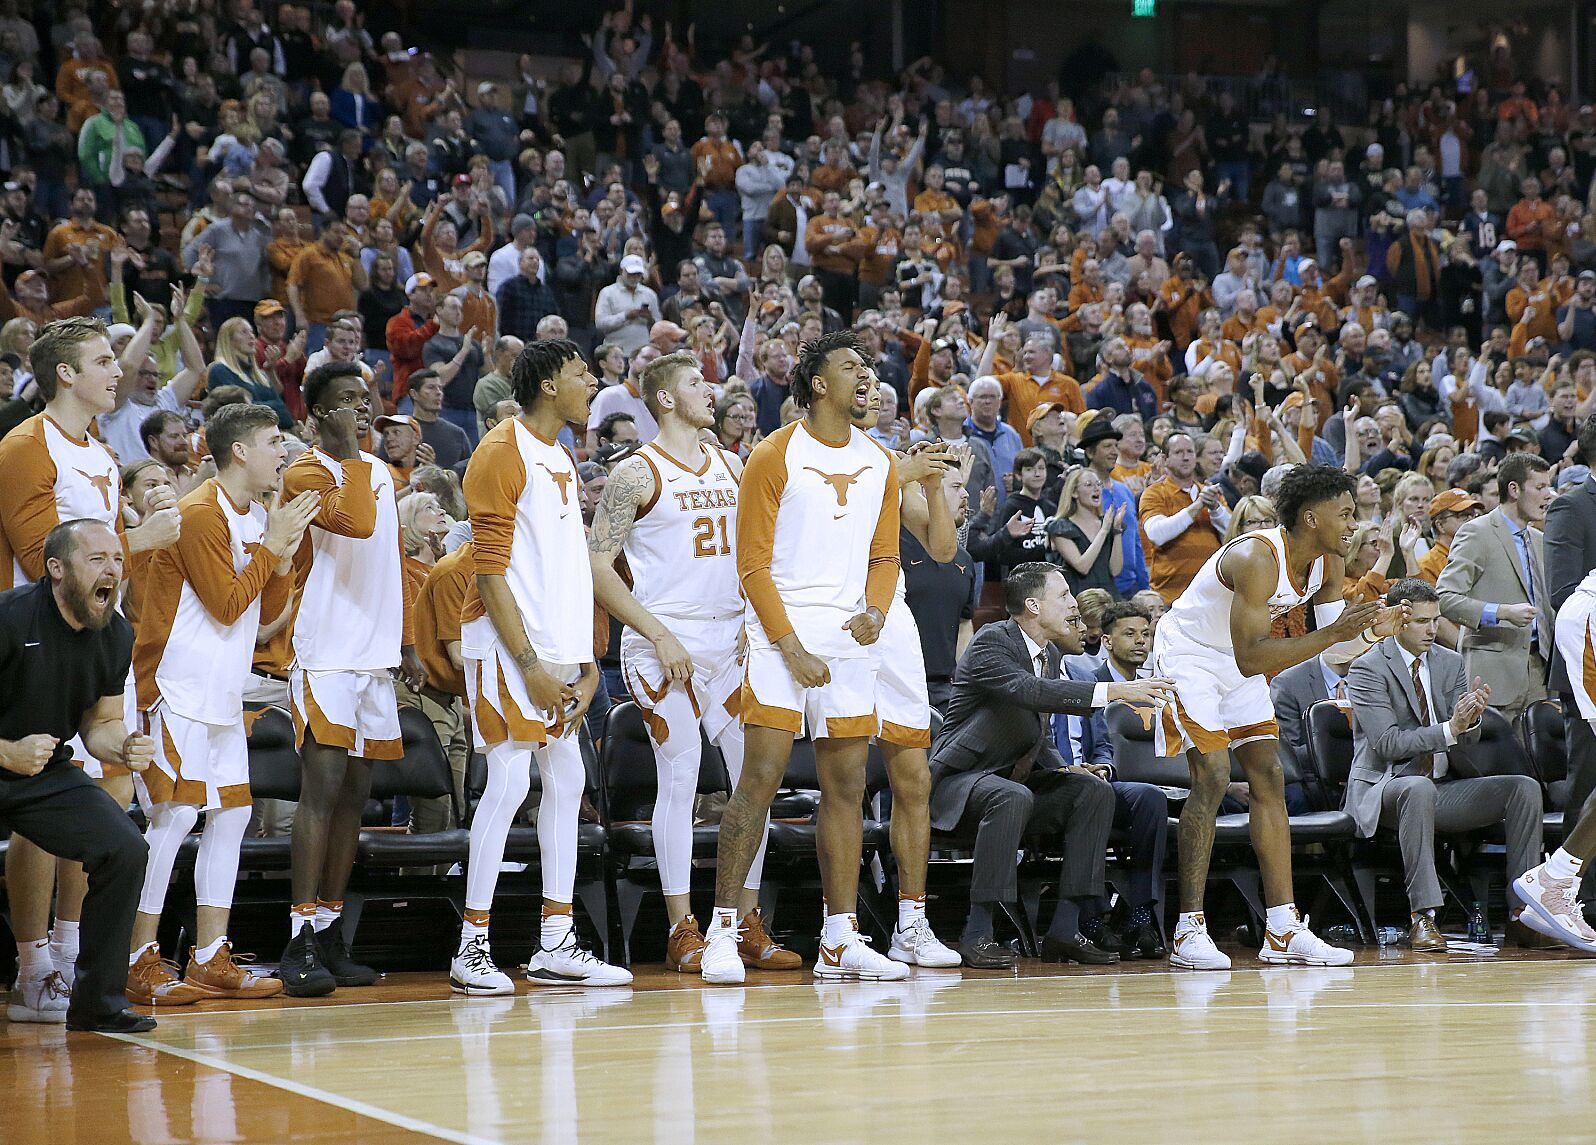 Texas Basketball: 3 things Longhorns fans want for Christmas in 2018